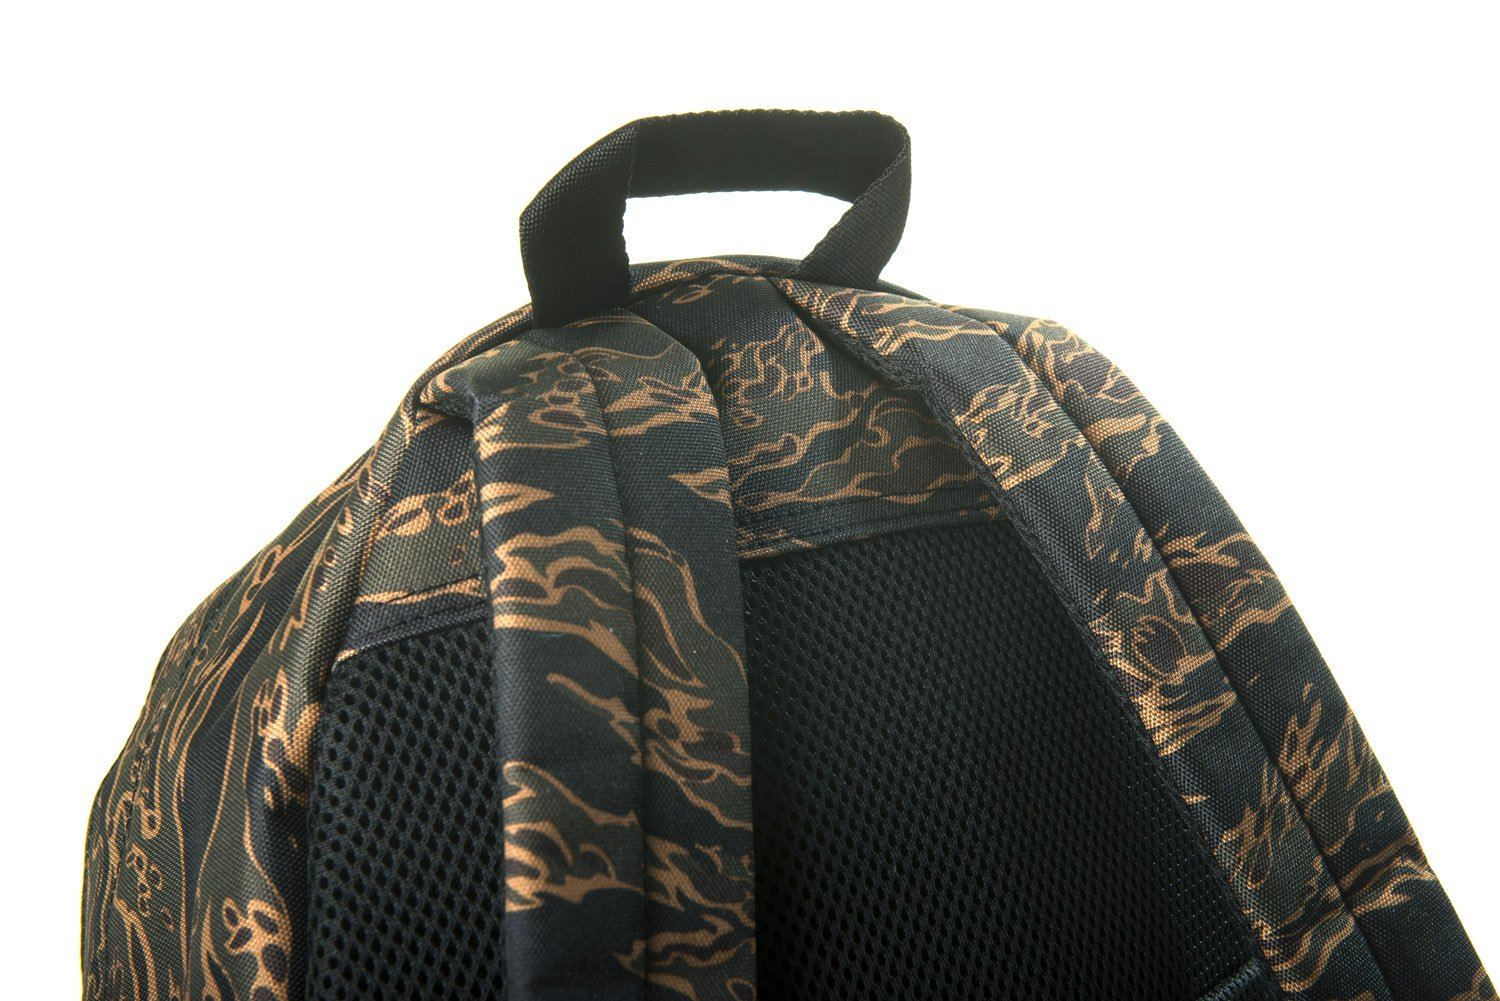 Adidas AOP Backpack DH2571 in Tiger Camouflage Print